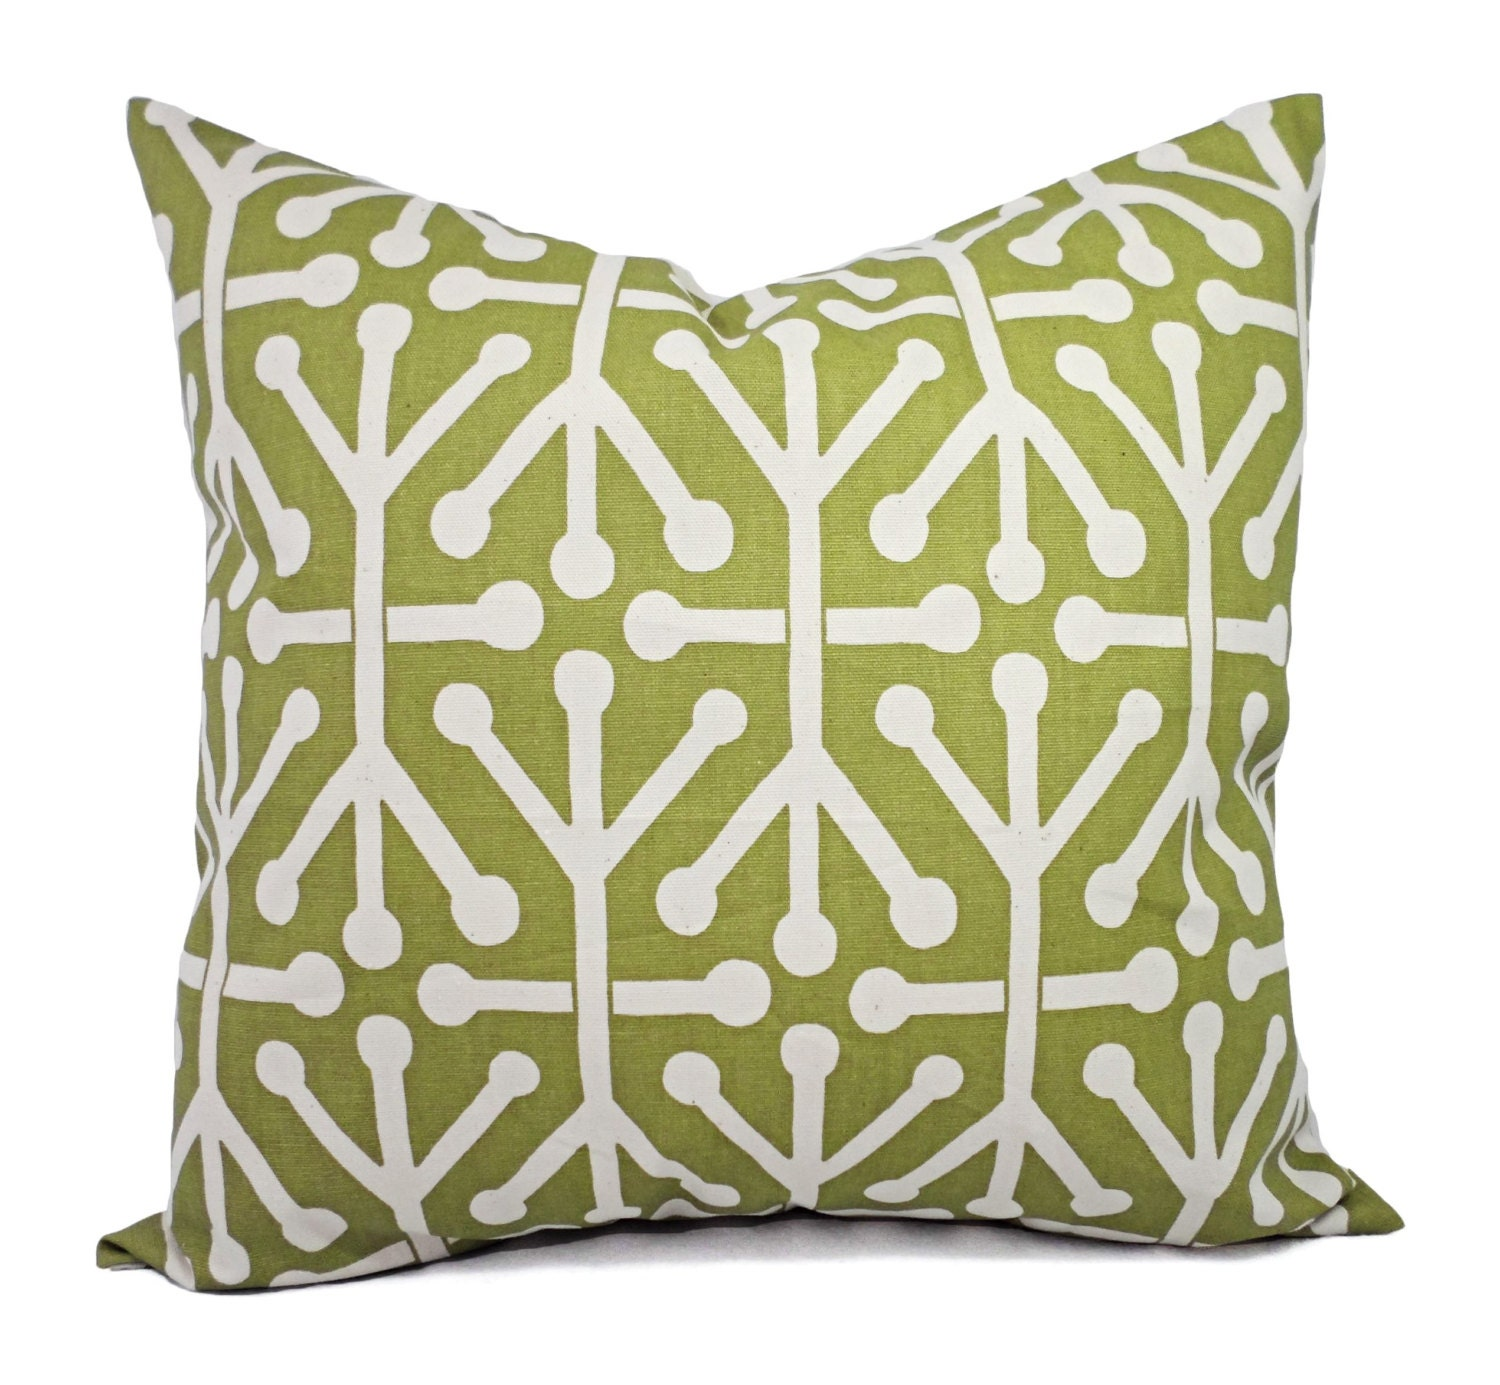 Decorative Lumbar Pillows Green : Green Decorative Pillow Covers Two Green by CastawayCoveDecor